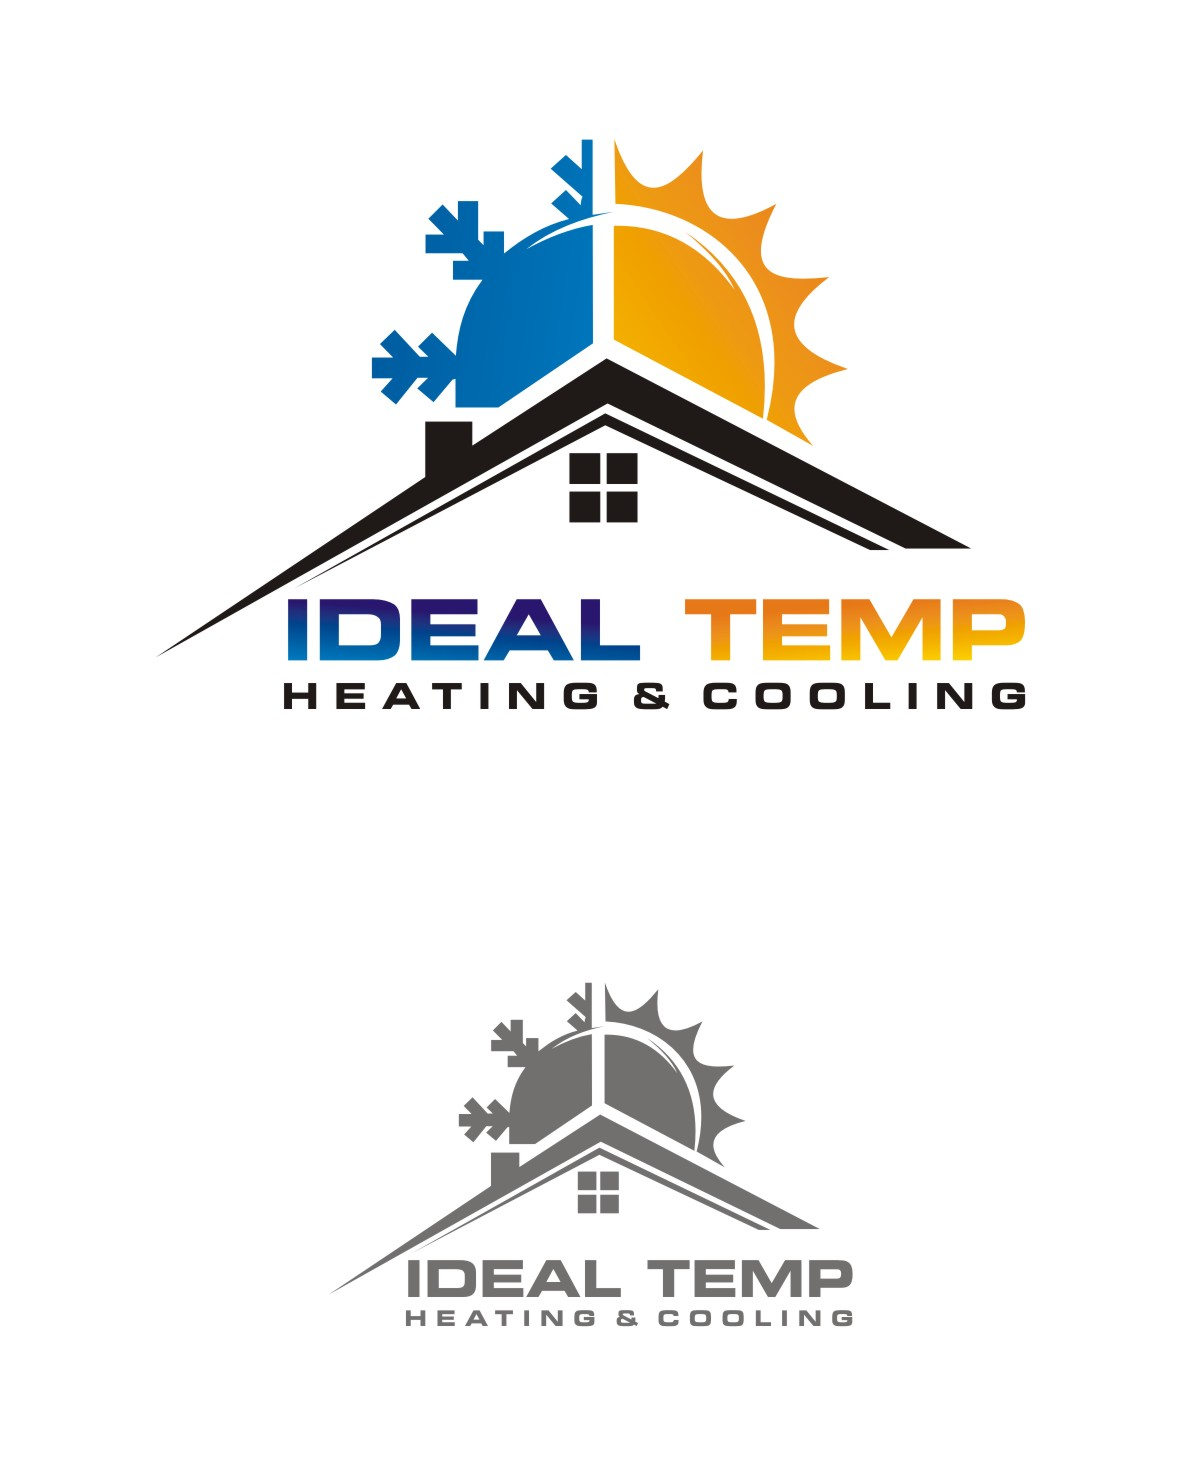 Logo Design by Lynx Graphics - Entry No. 241 in the Logo Design Contest Captivating Logo Design for Ideal Temp.